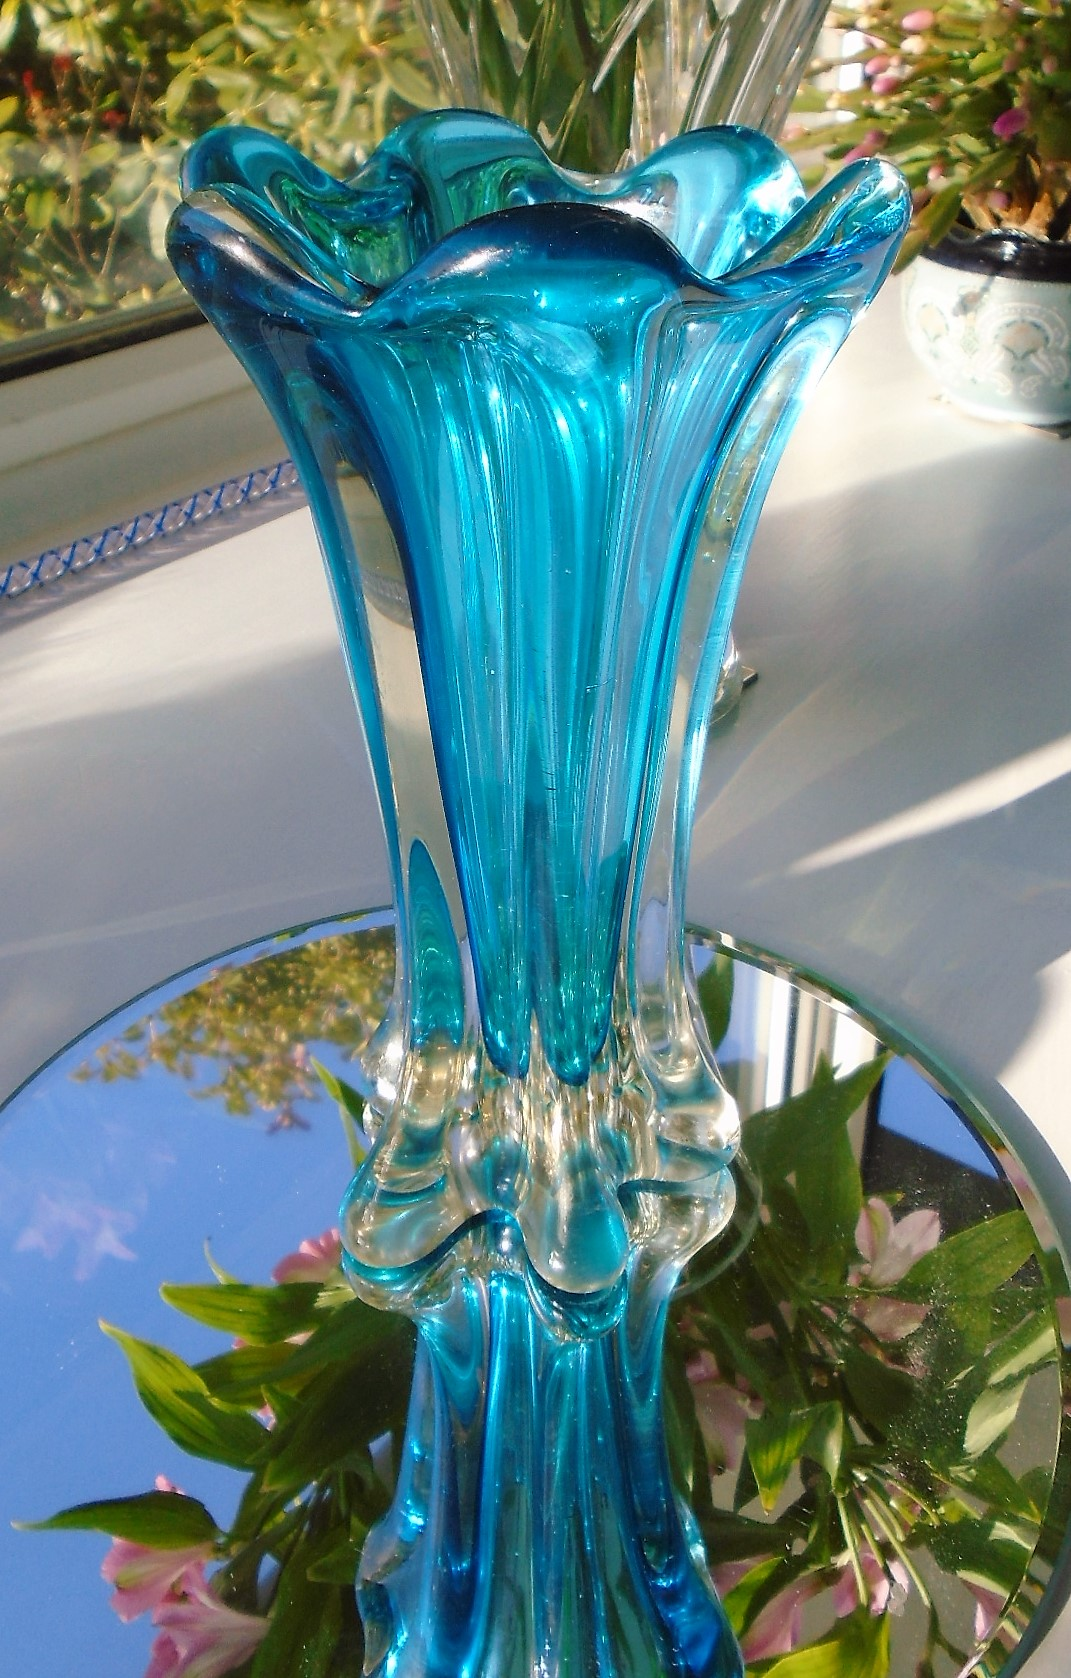 Stunning Mid Century MURANO SOMMERSO GLASS VASE attributed to Flavio Poli